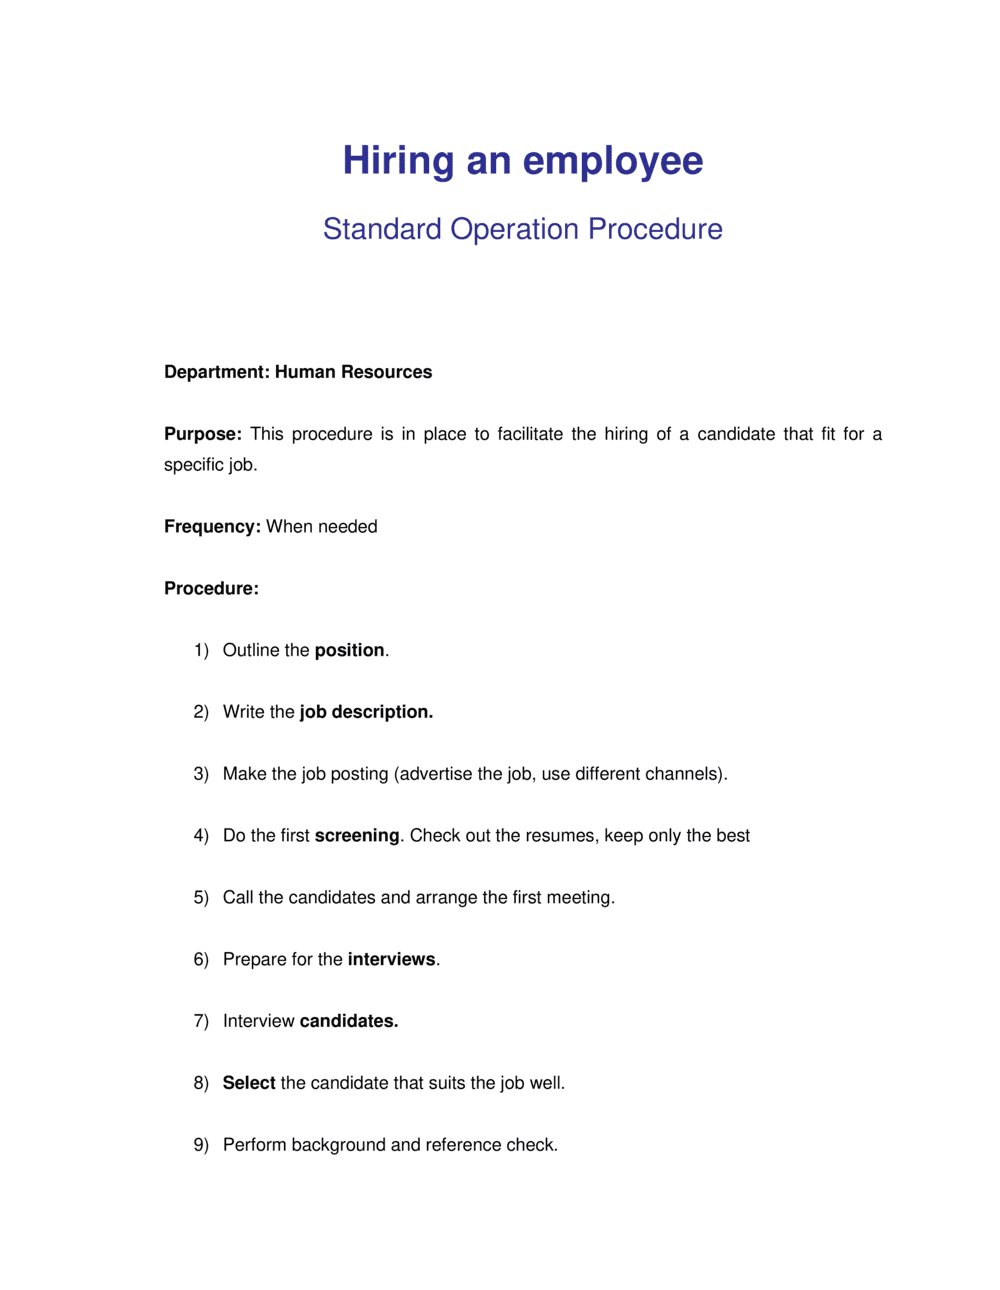 Business-in-a-Box's How to Hire an Employee